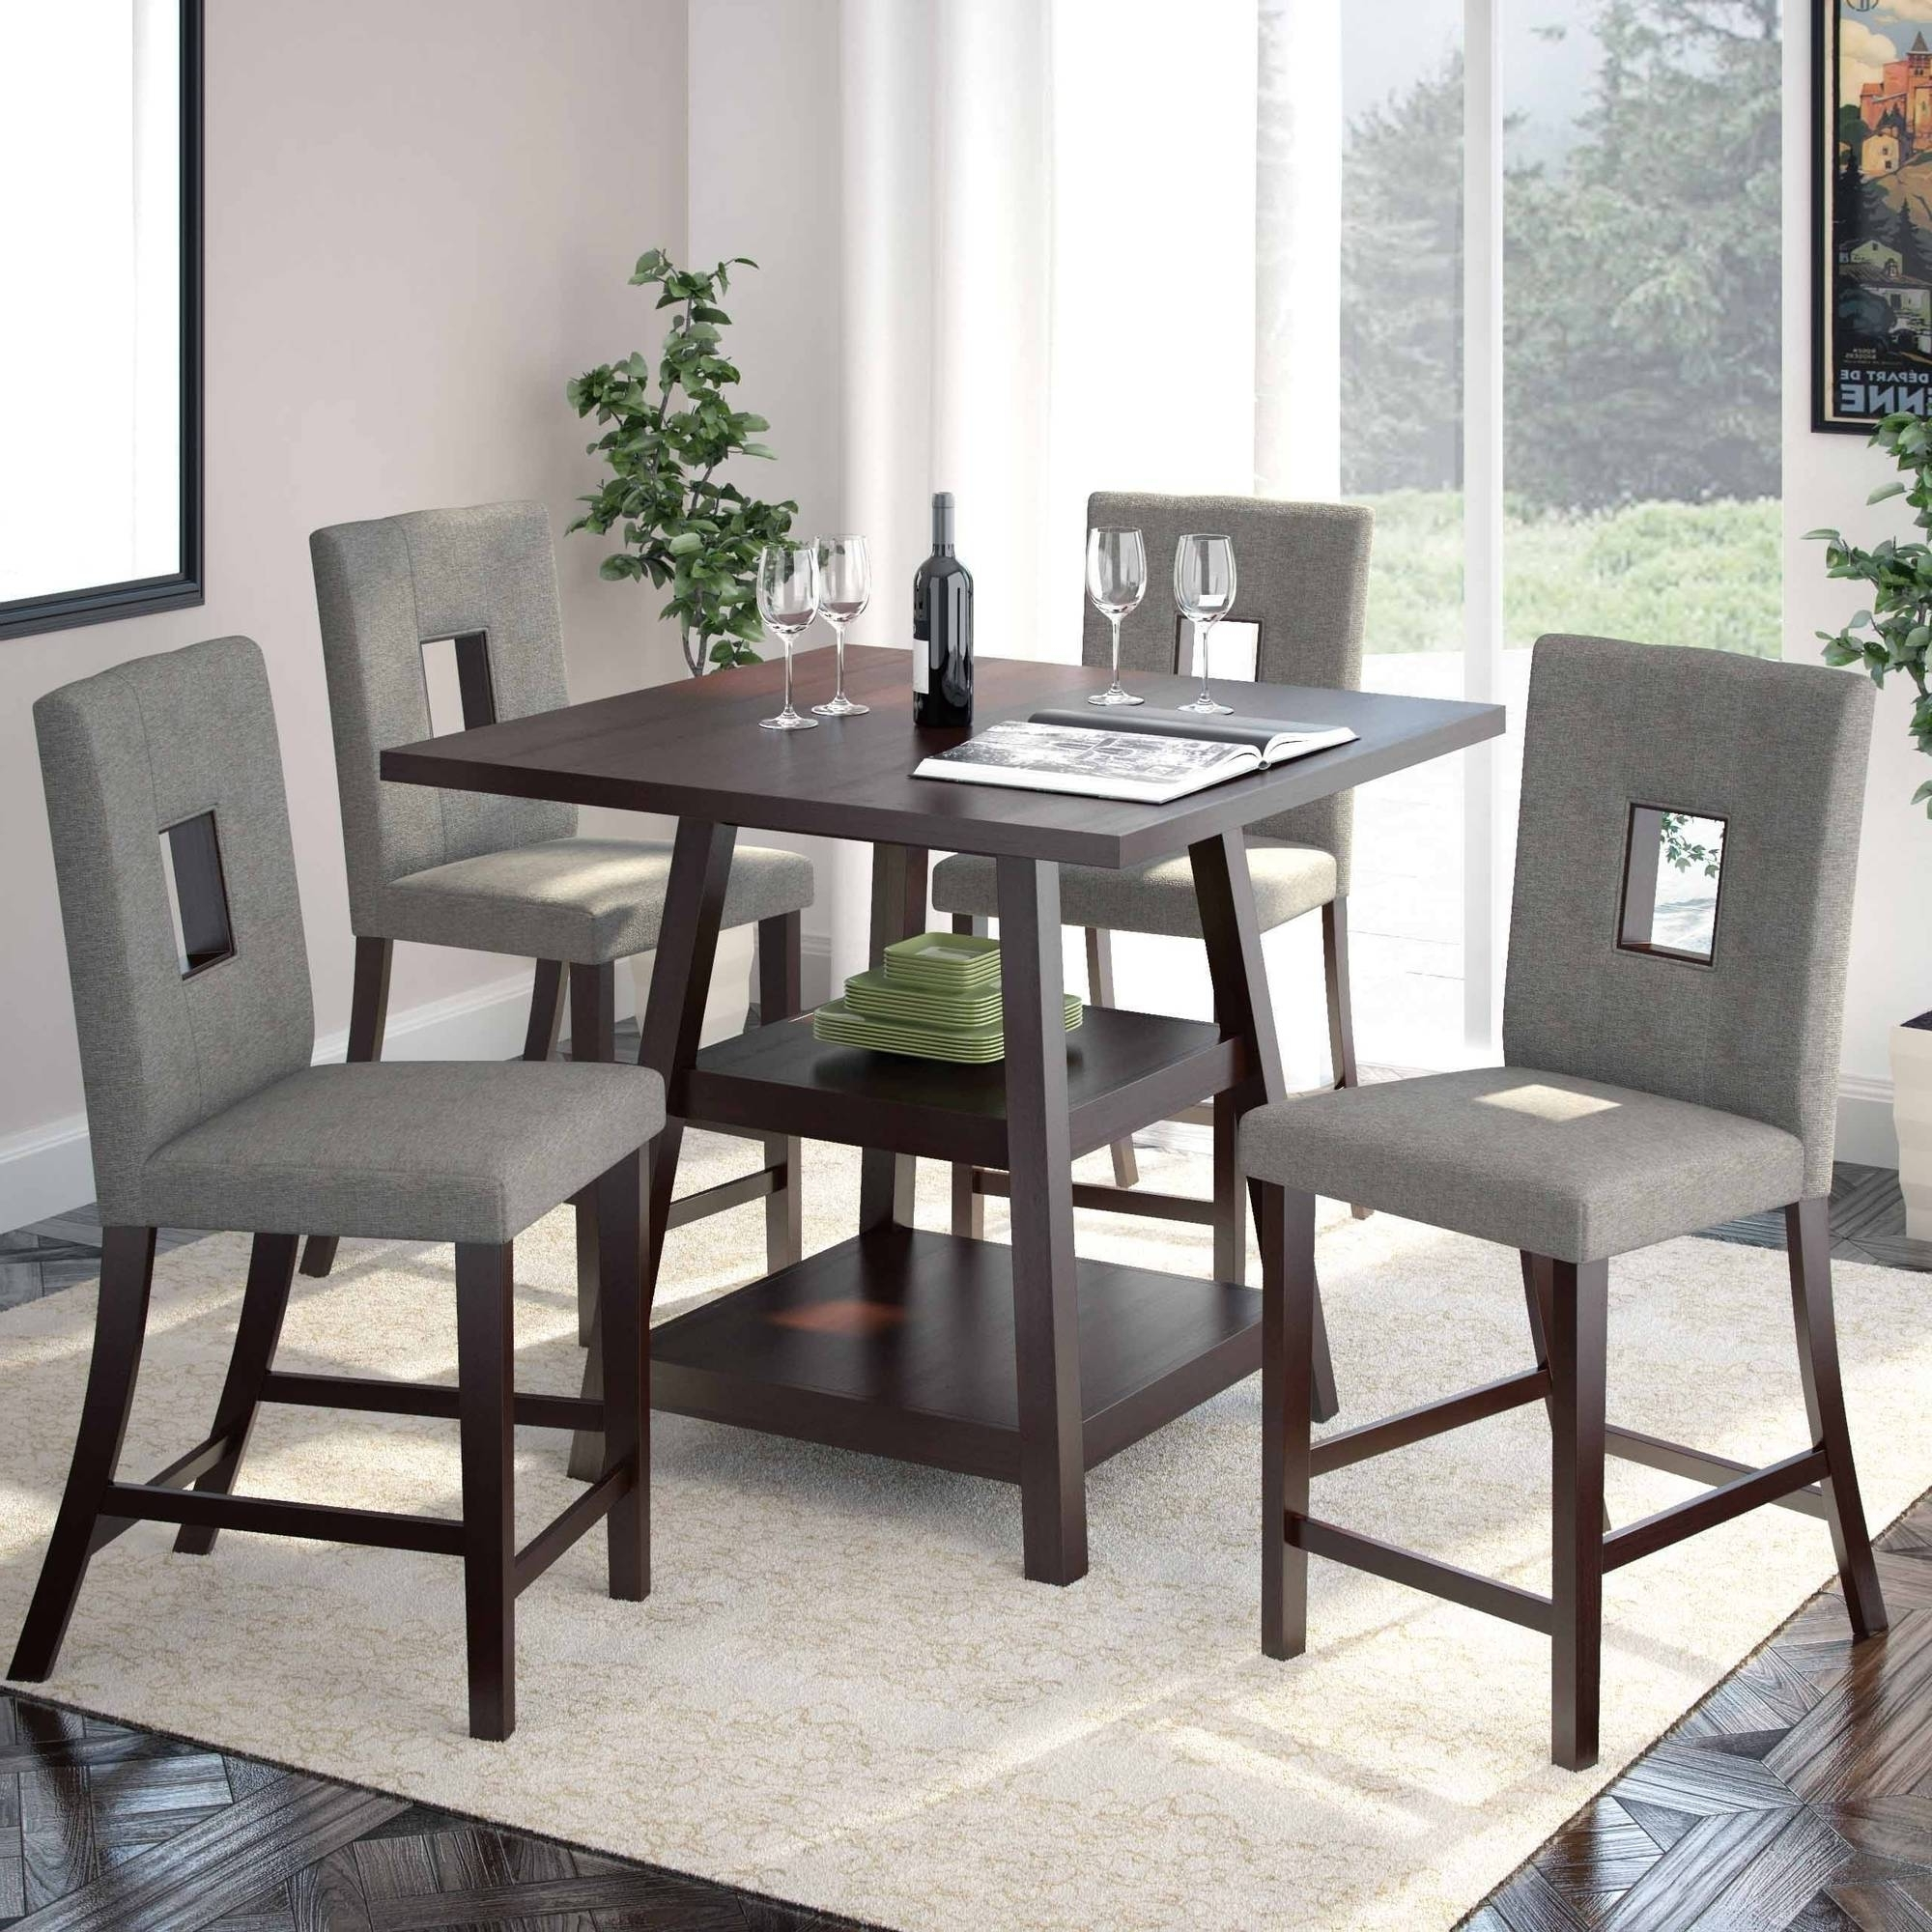 "Corliving Bistro 5Pc 36"" Counter Height Rich Cappuccino Dining Set Intended For Most Recently Released Market 5 Piece Counter Sets (Gallery 2 of 25)"